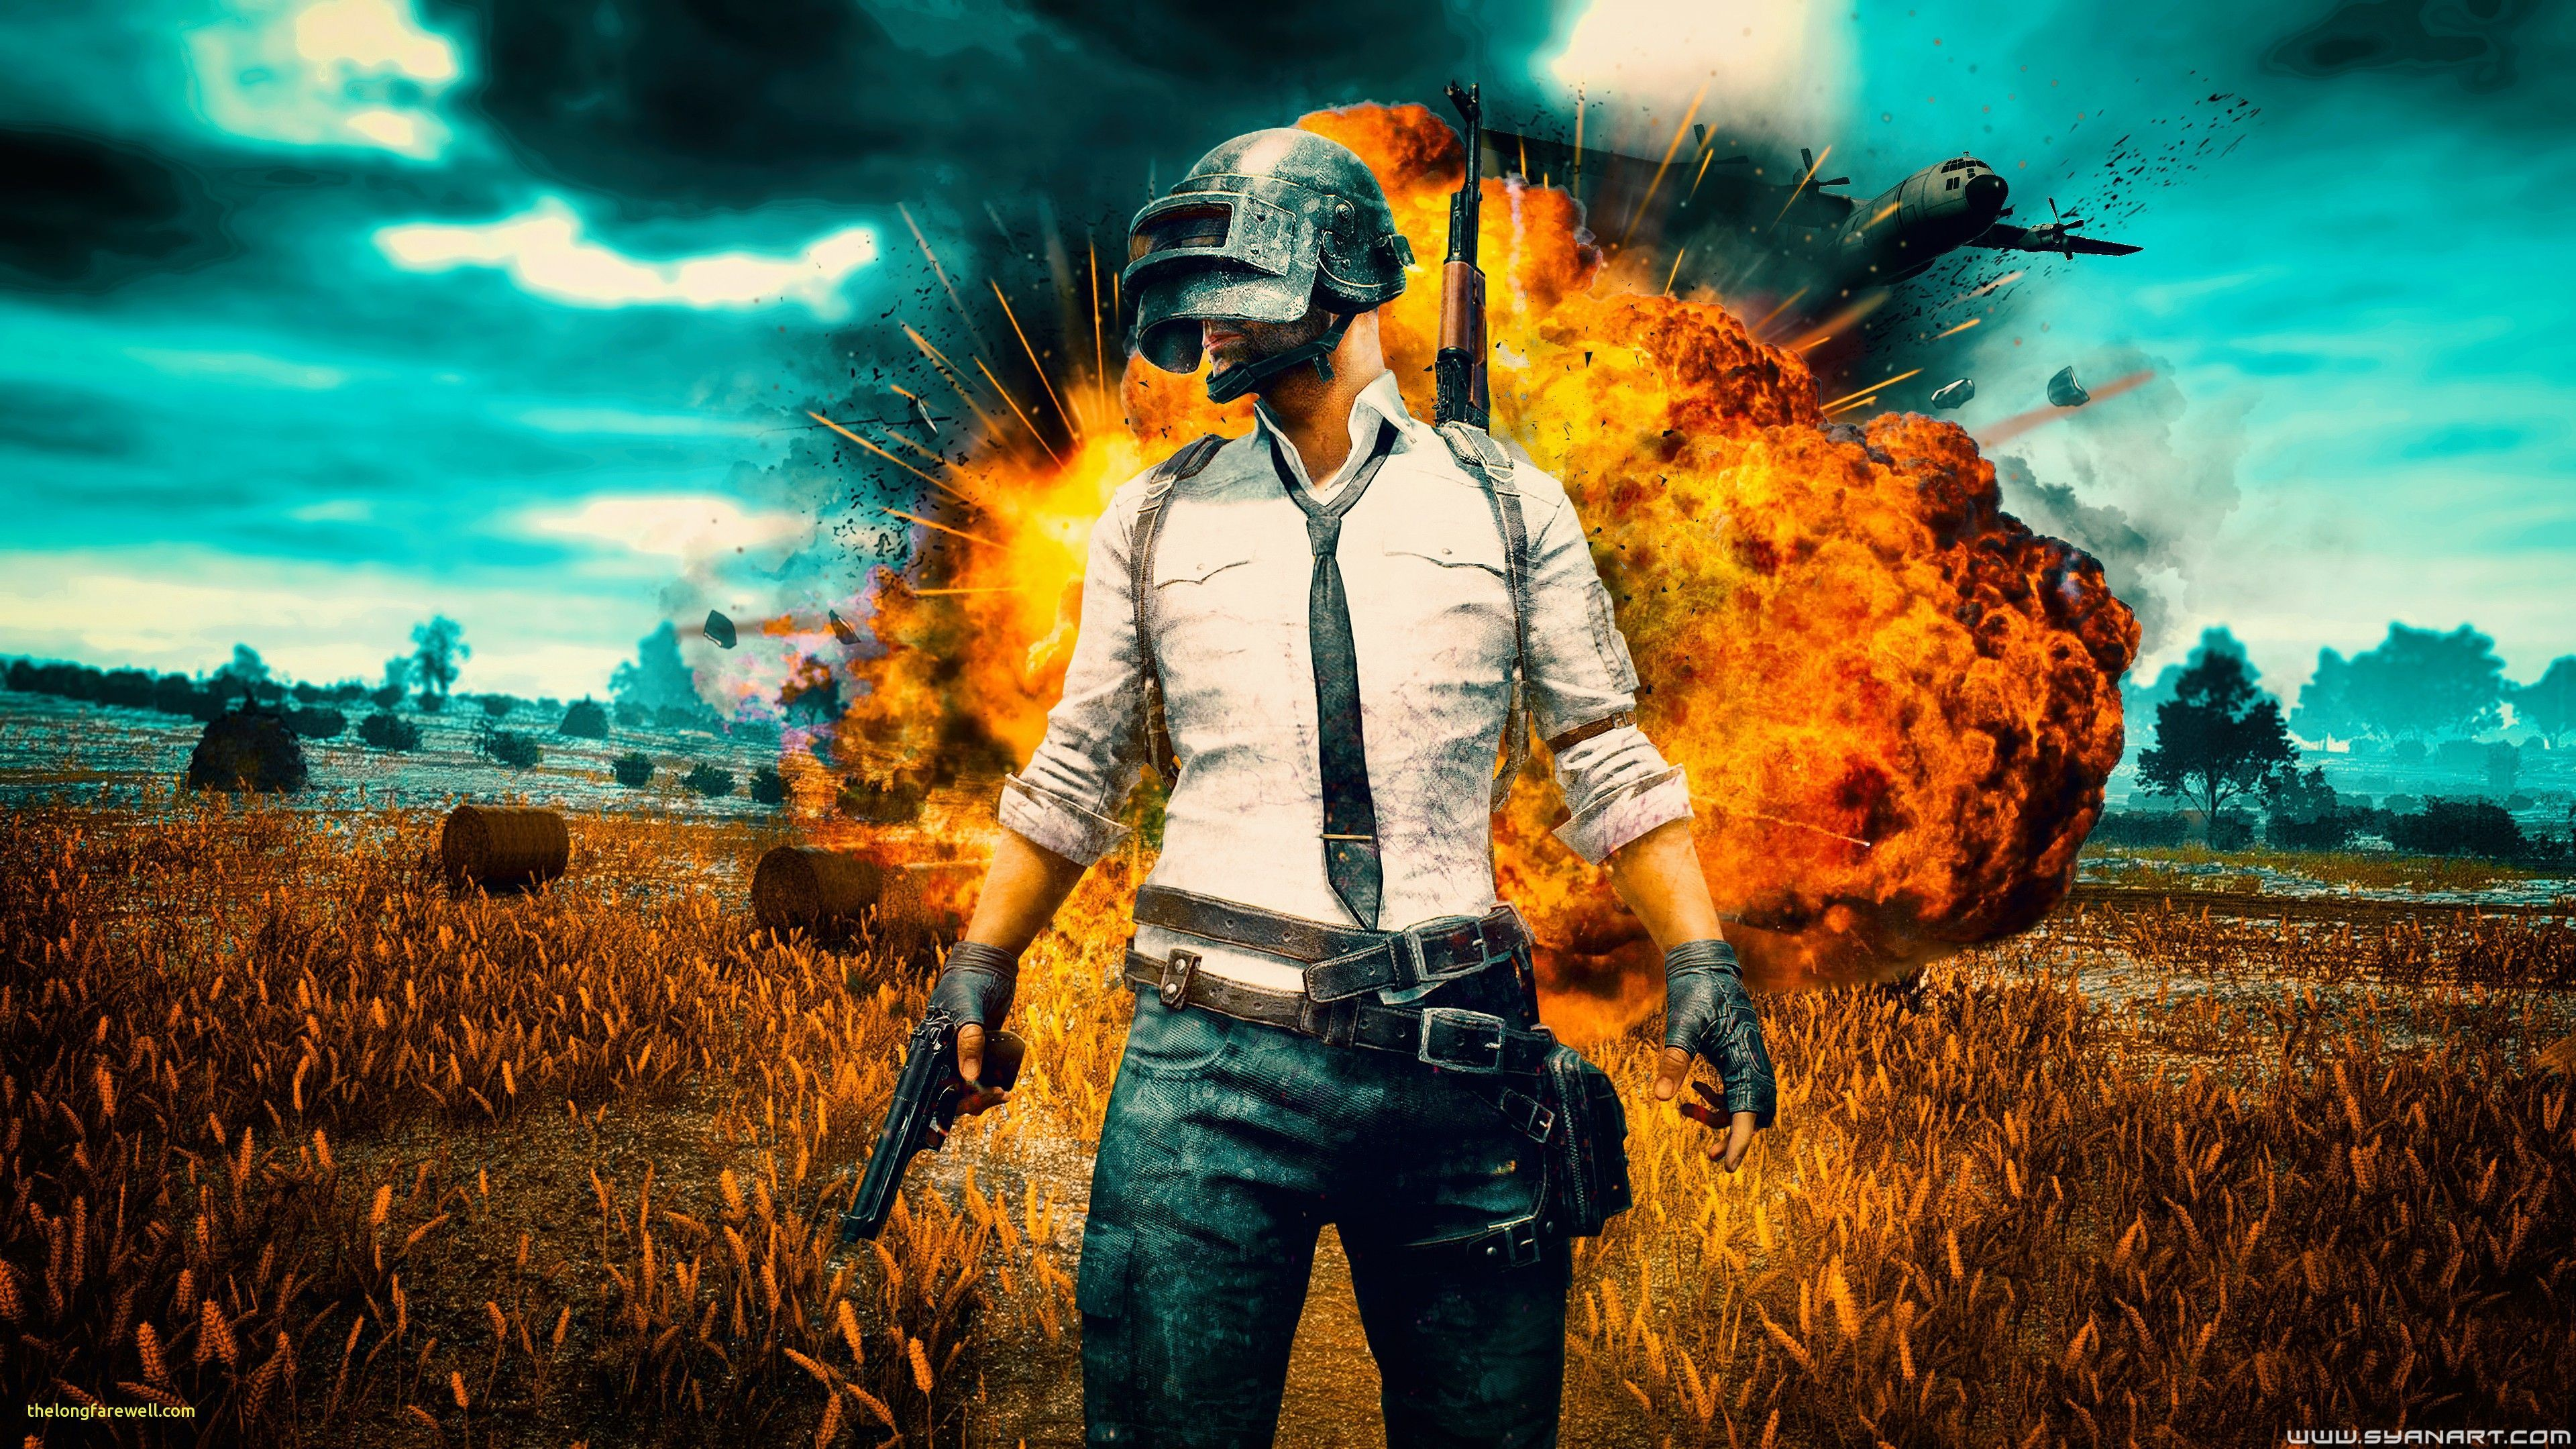 Pubg 4k Gaming Wallpapers Top Free Pubg 4k Gaming Backgrounds